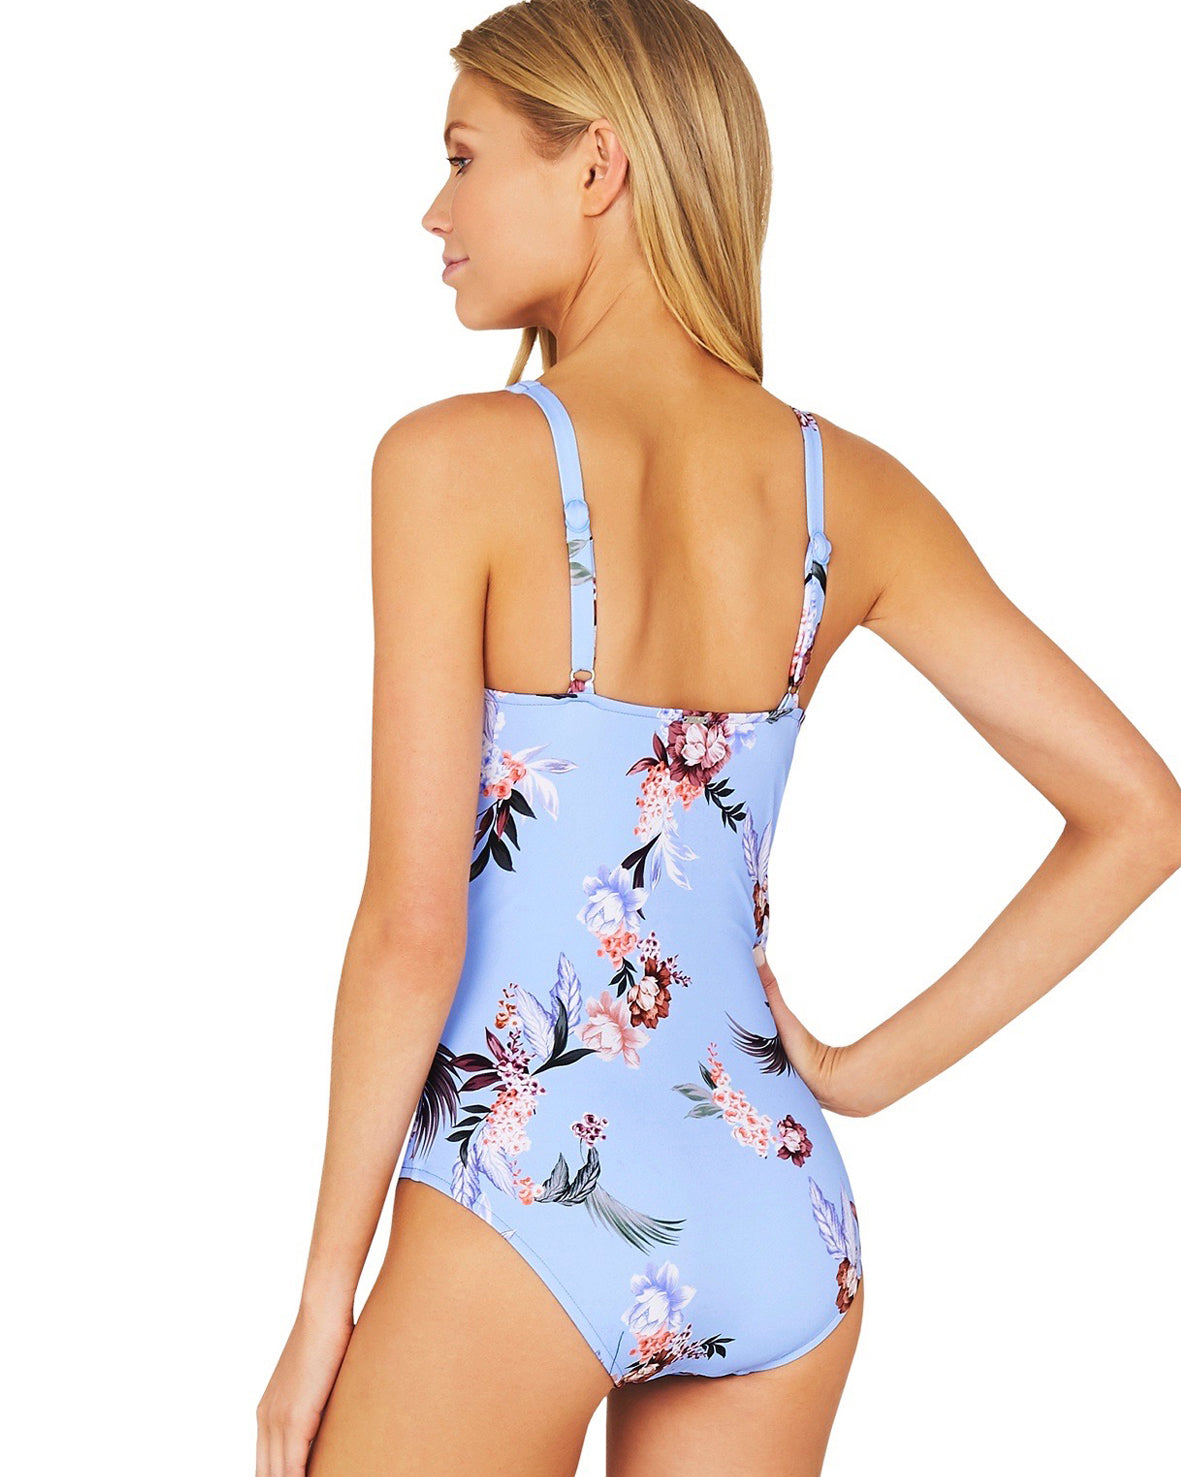 COVENT GARDEN LONGLINE ONE PIECE SWIMSUIT